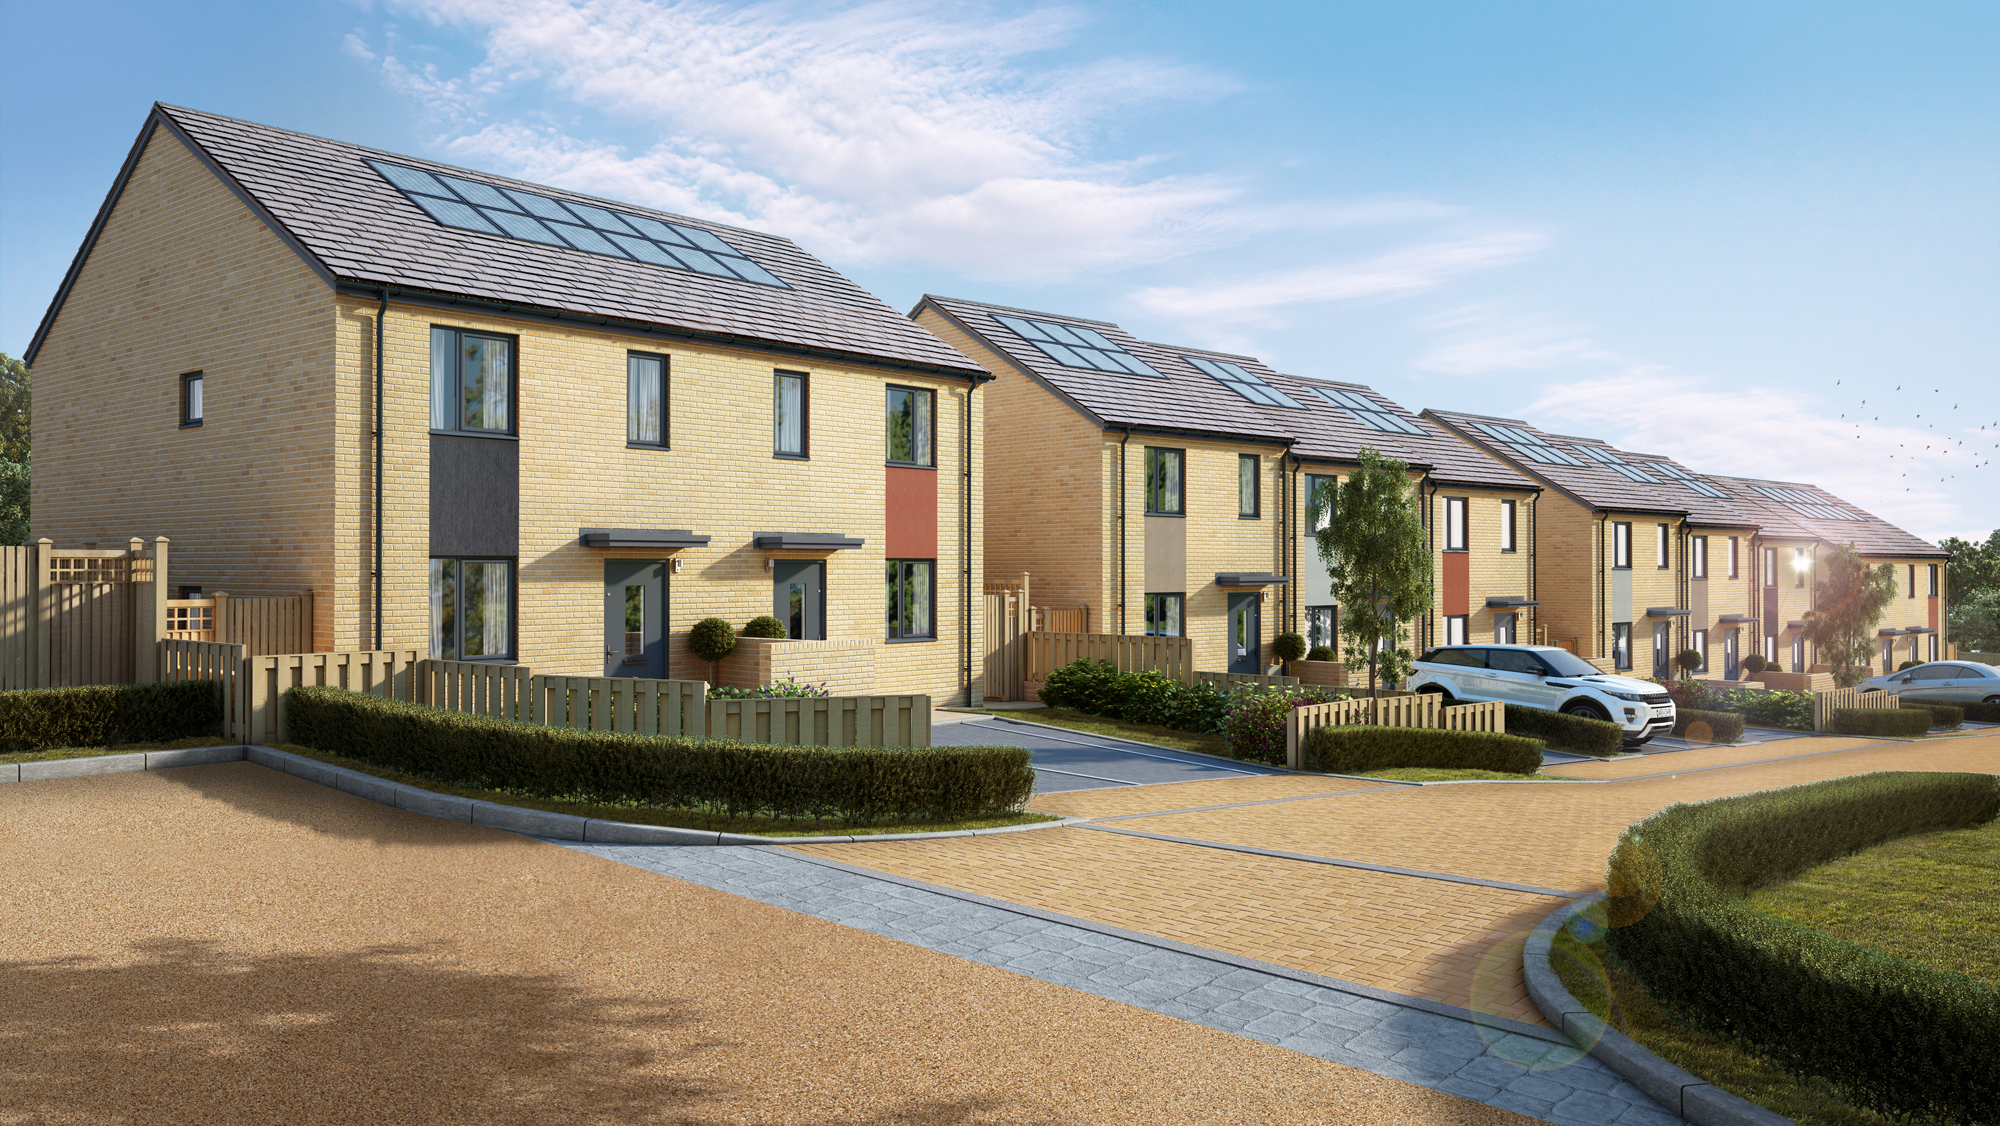 Quebec Park New Homes In Bordon East Hampshire